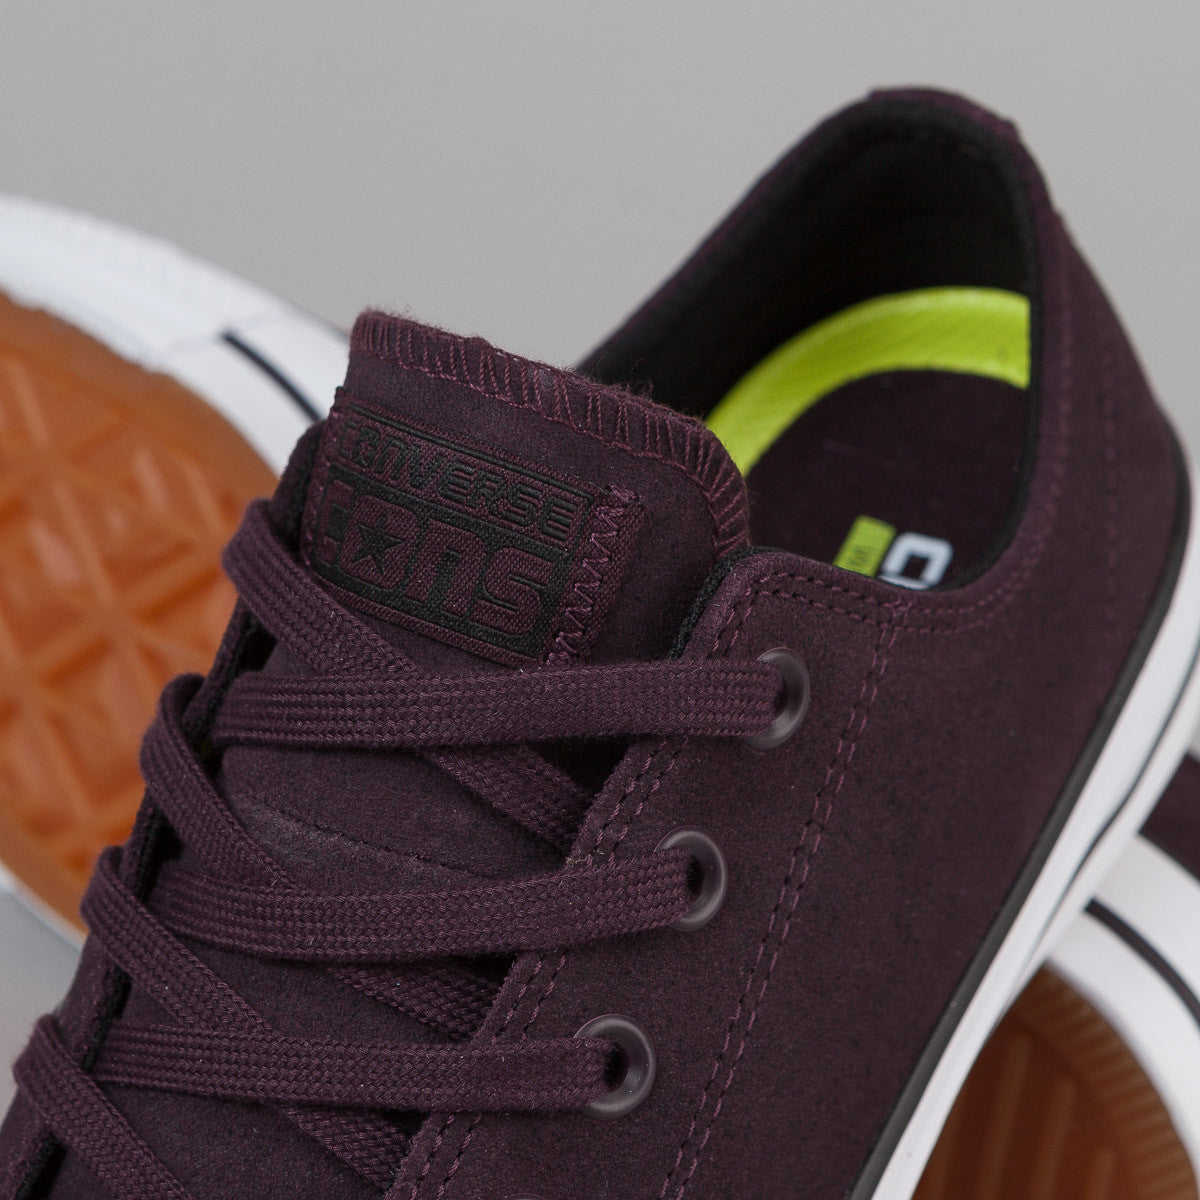 Converse CTAS Pro OX Shoes - Black Cherry / Black / White